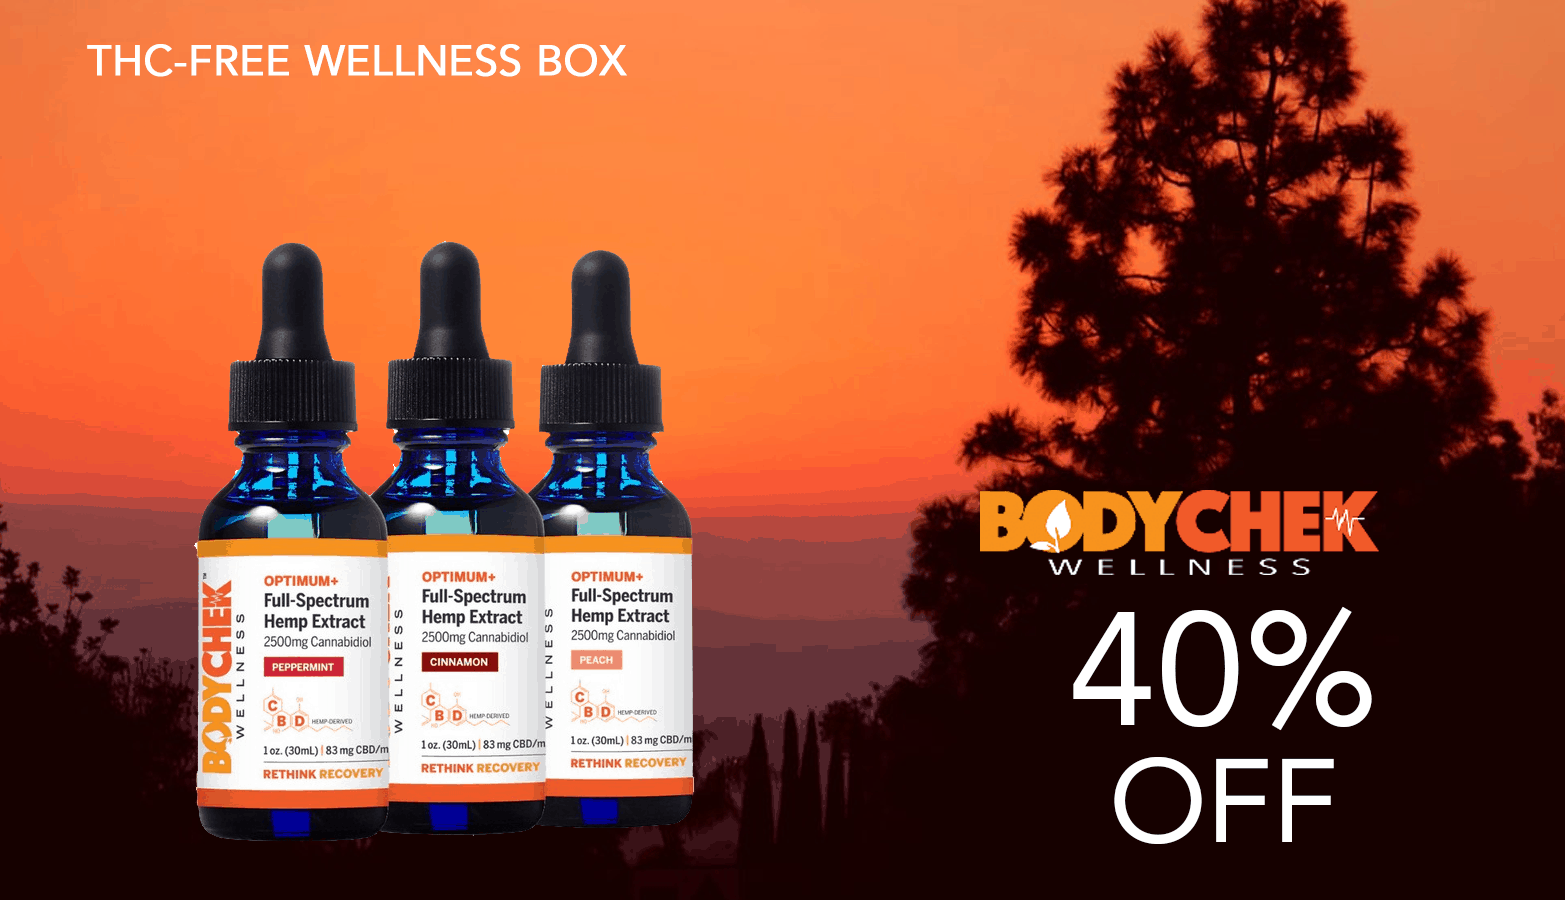 Body Check Wellness CBD Coupon Code Offer Website